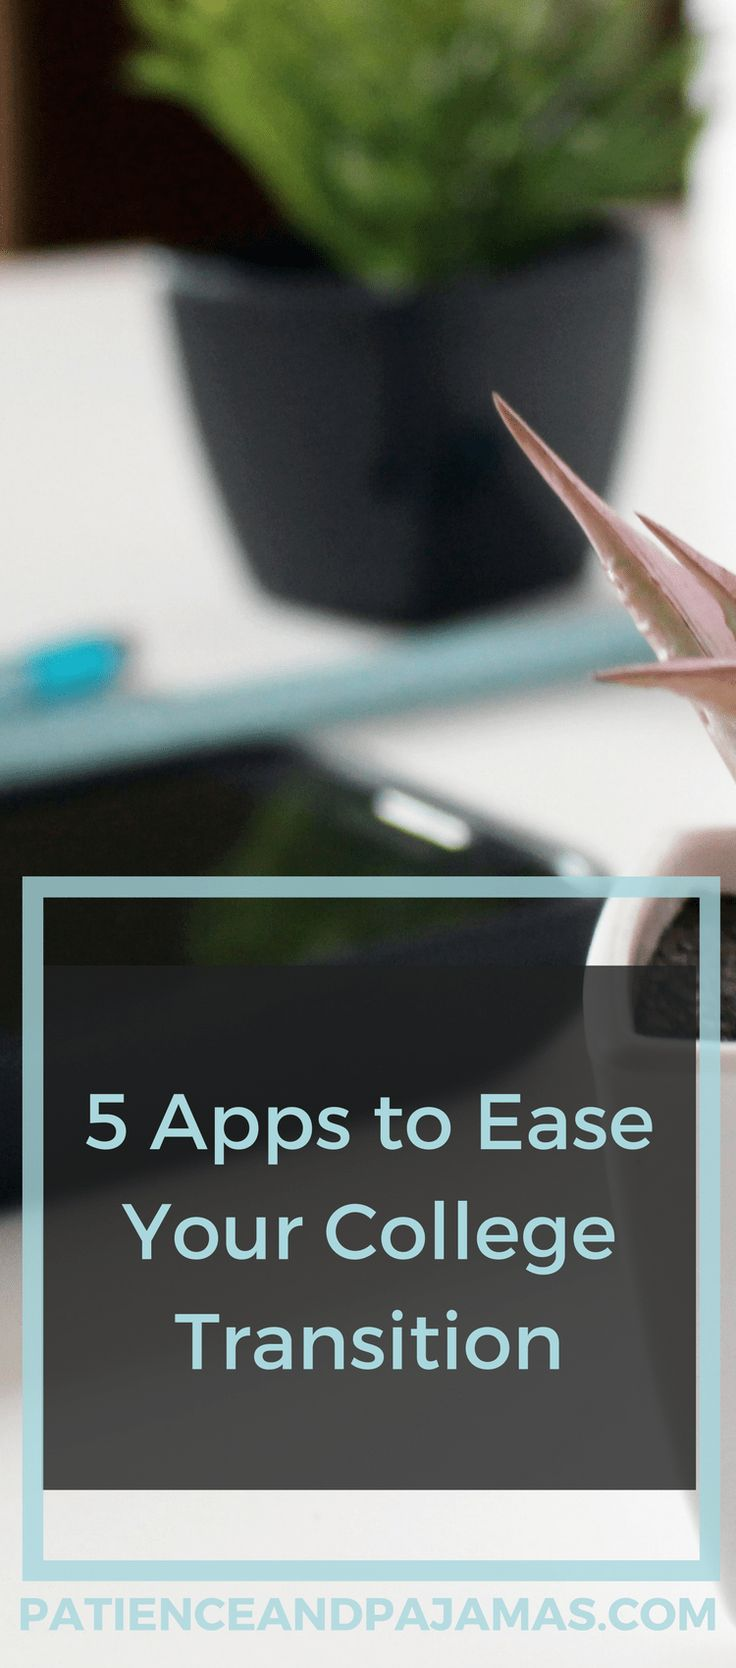 5 Apps to Ease Your College Transition